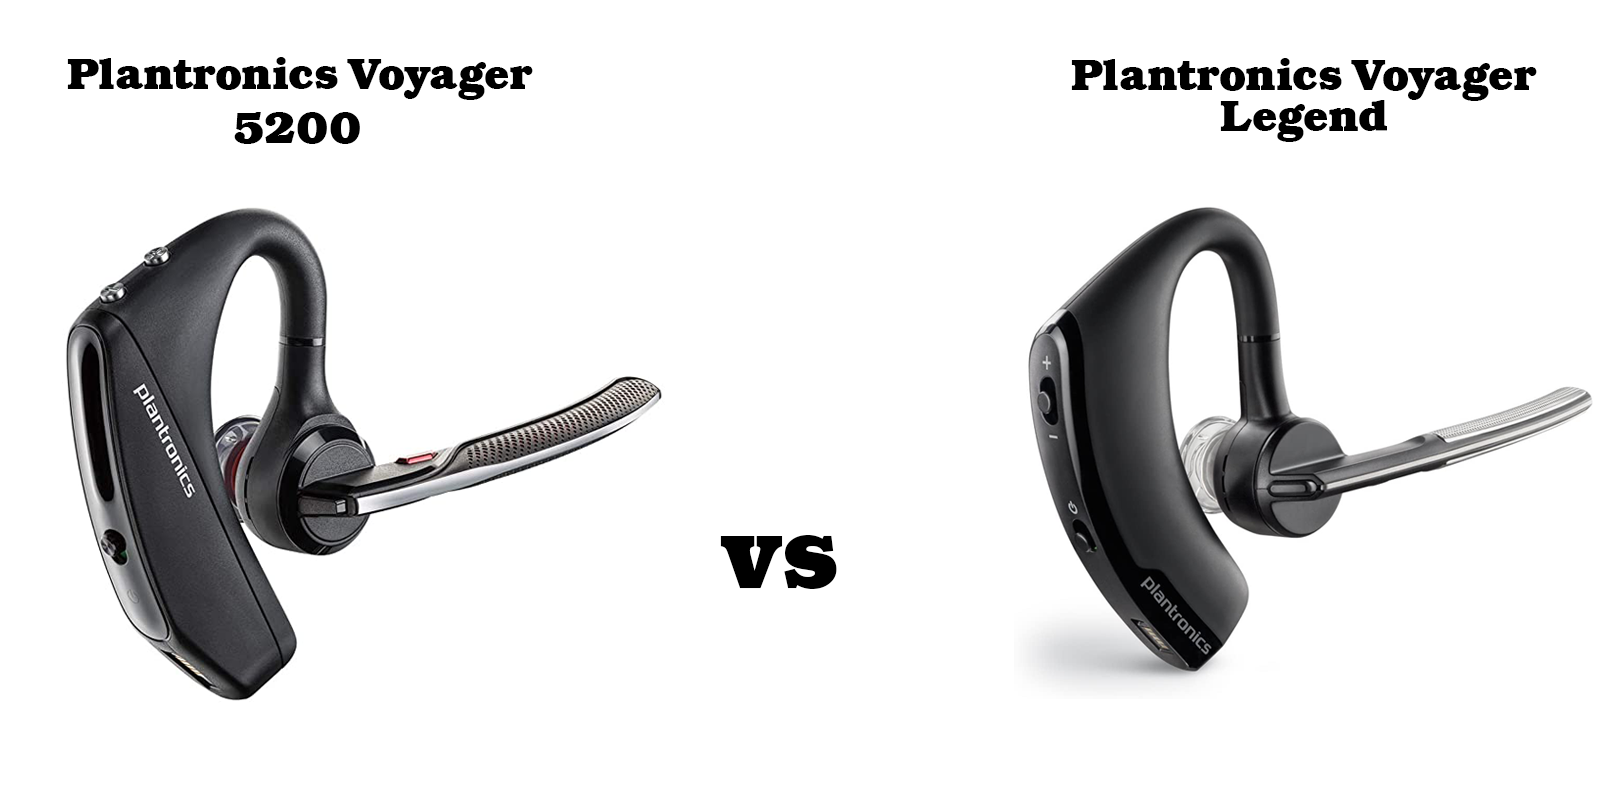 Plantronics Voyager 5200 Vs Legend Headsets Fit Sound Noise Cancellation Smartphone Accessories Review